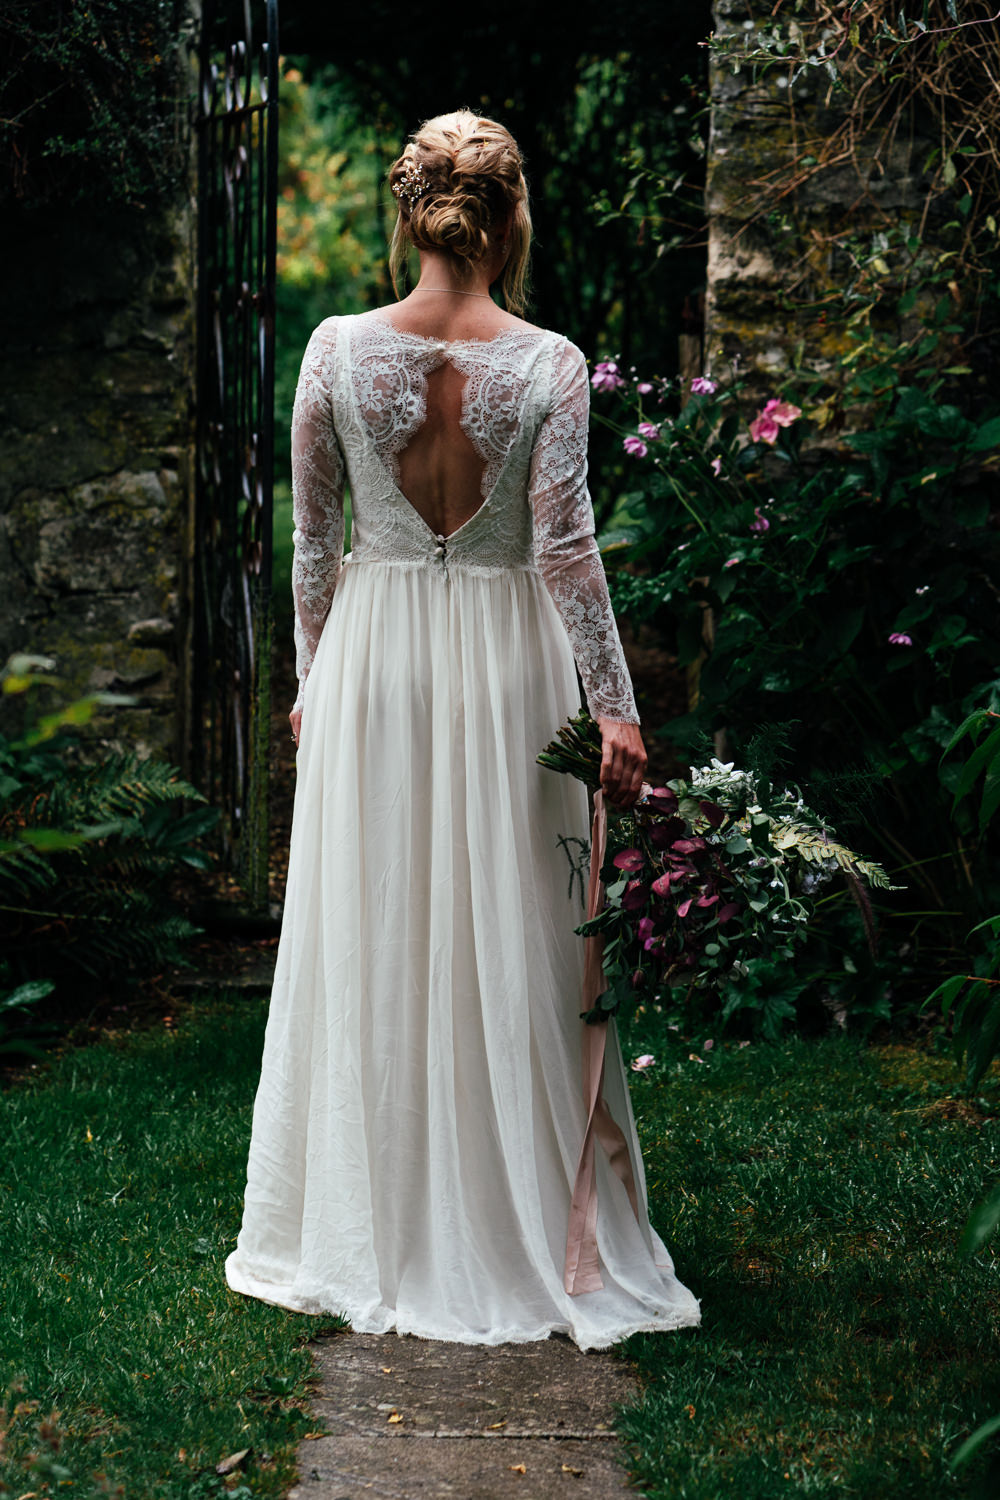 Bride Bridal Dress Gown Lace Sleeves Veil Covid Real Wedding Holly Bobbins Wedding Photographer